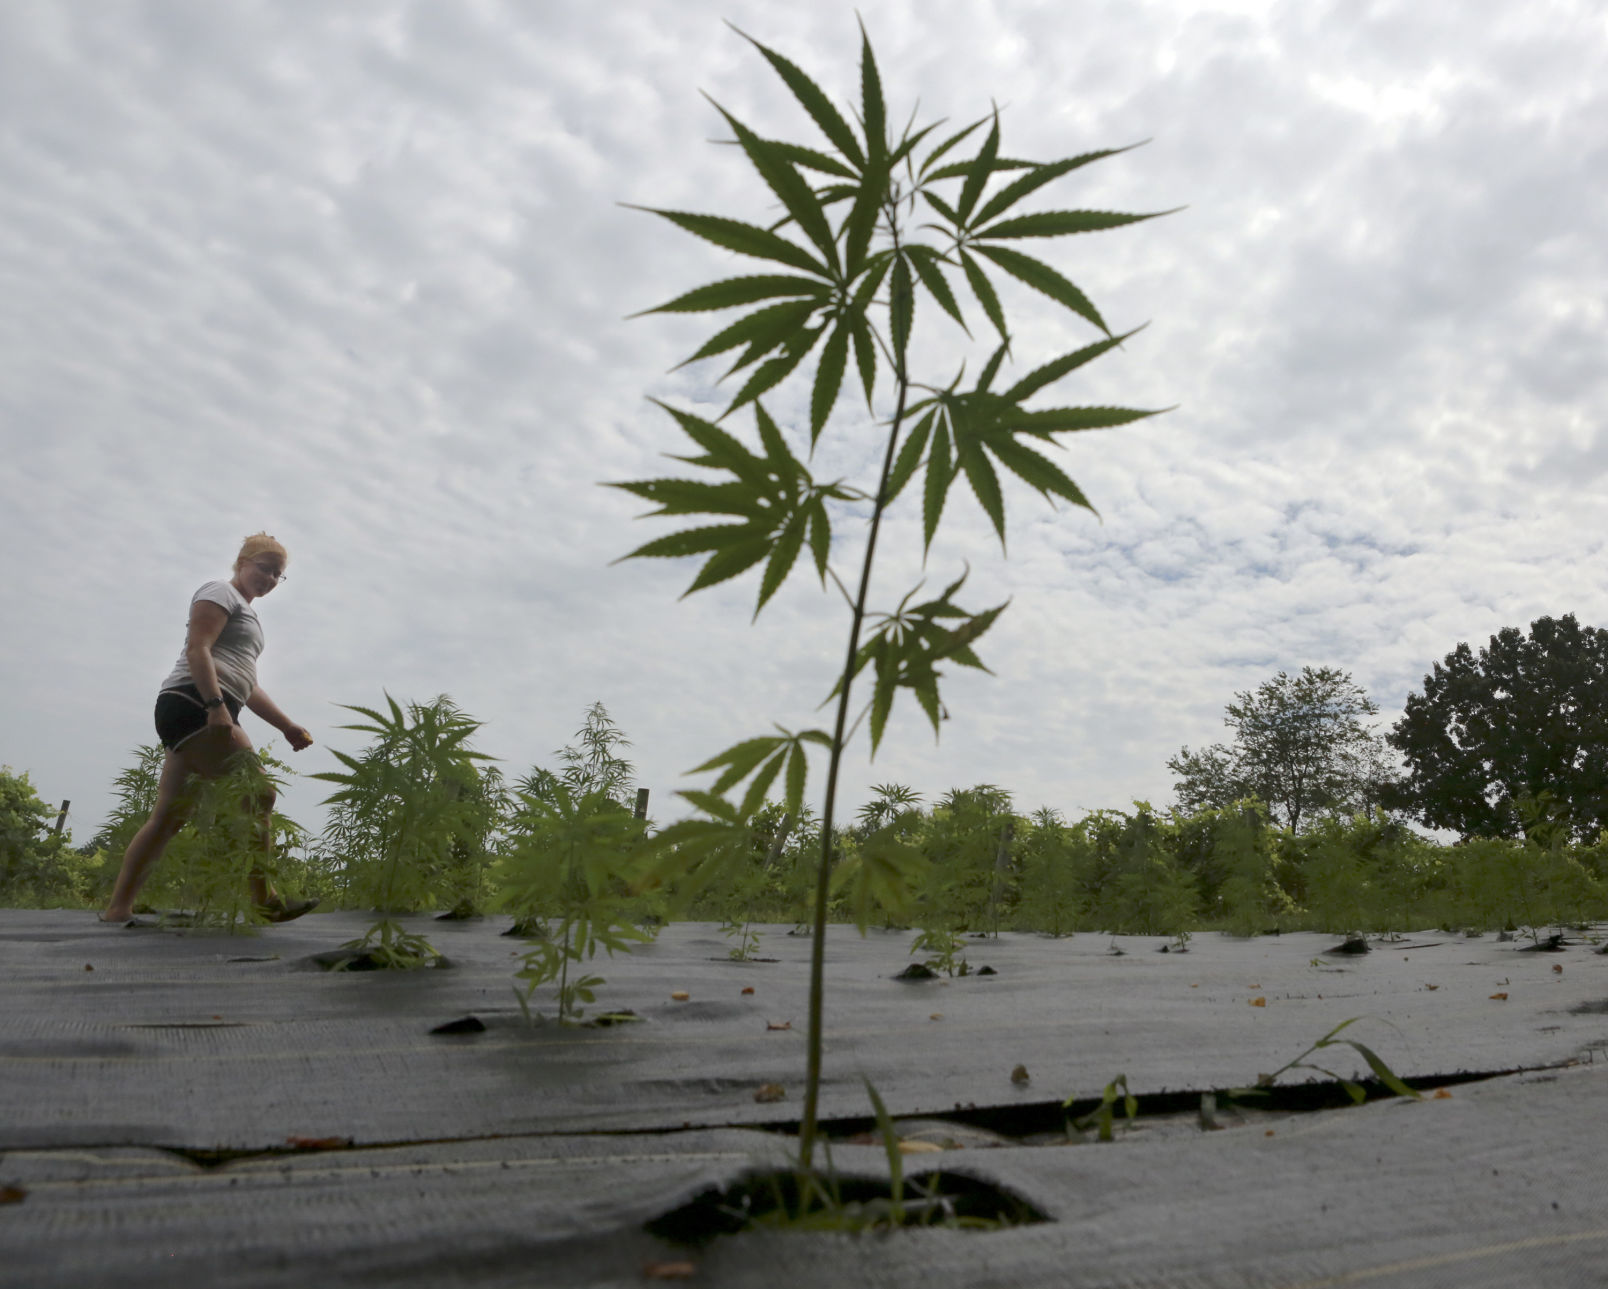 Virginia S Commercial Hemp Rush Launches After Changes In Laws Local News Roanoke Com